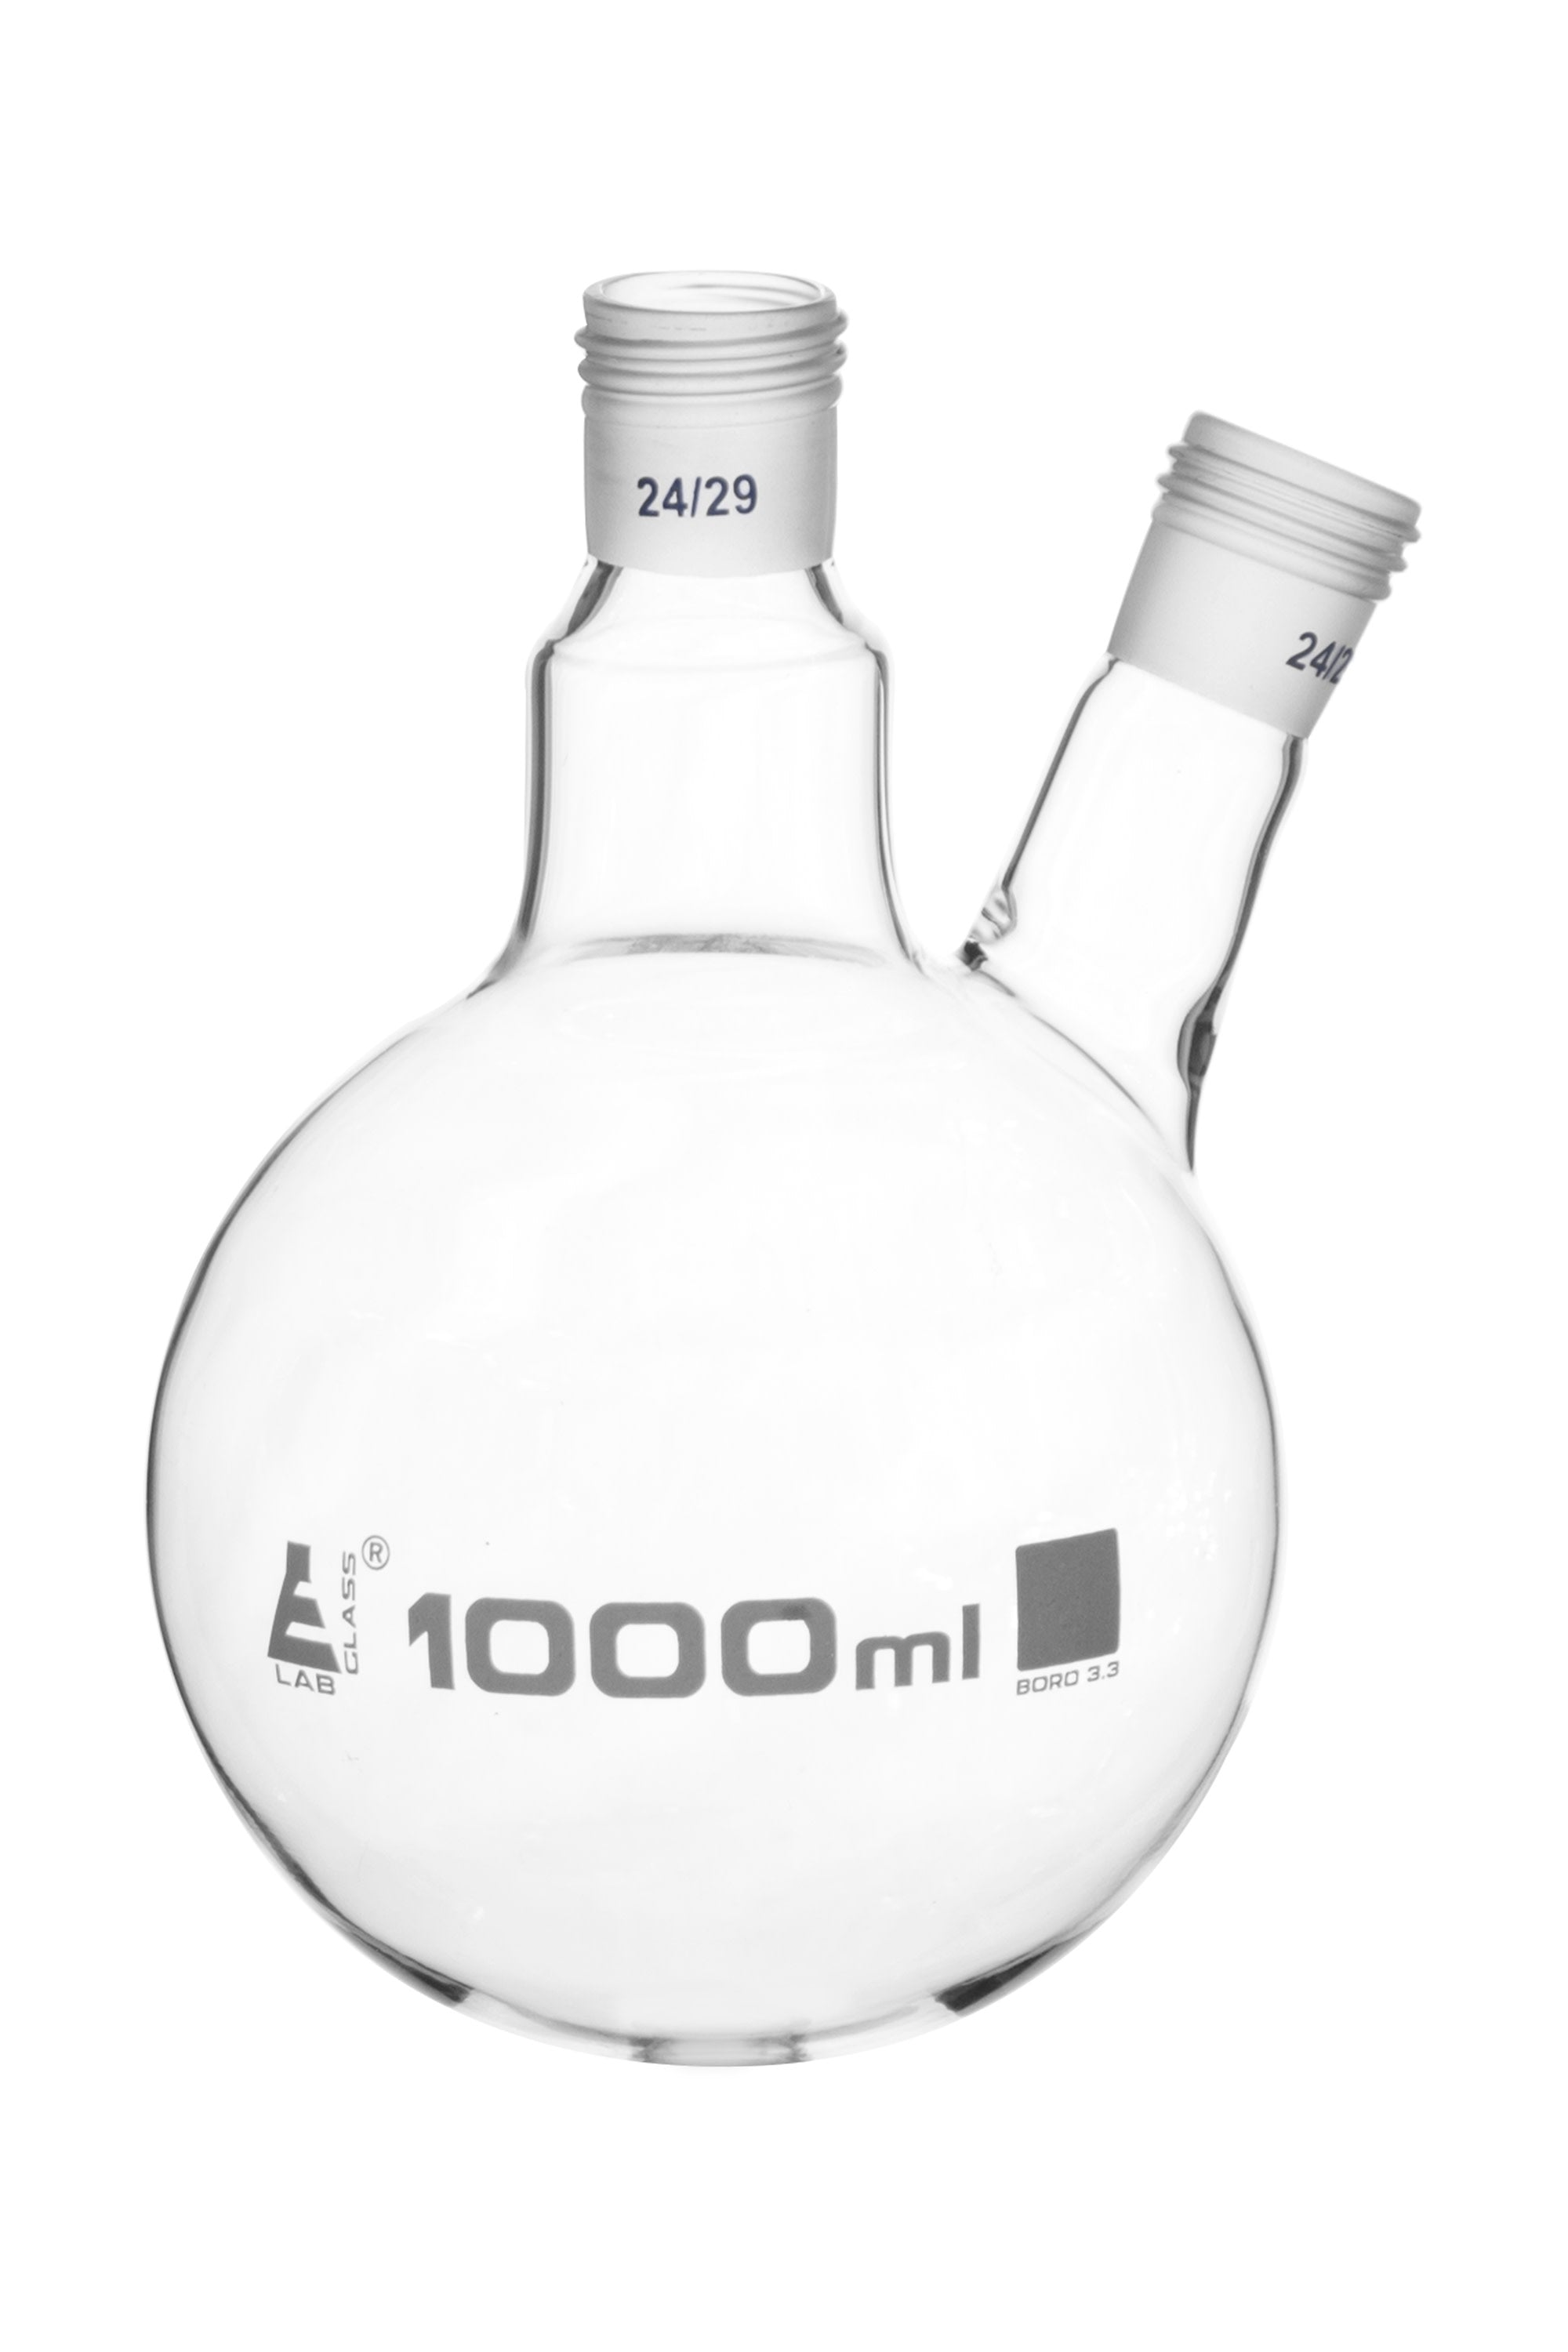 Borosilicate Glass 2 Neck Distillation Flask, 24/29 Screw Thread Joint, 1000 ml, Autoclavable